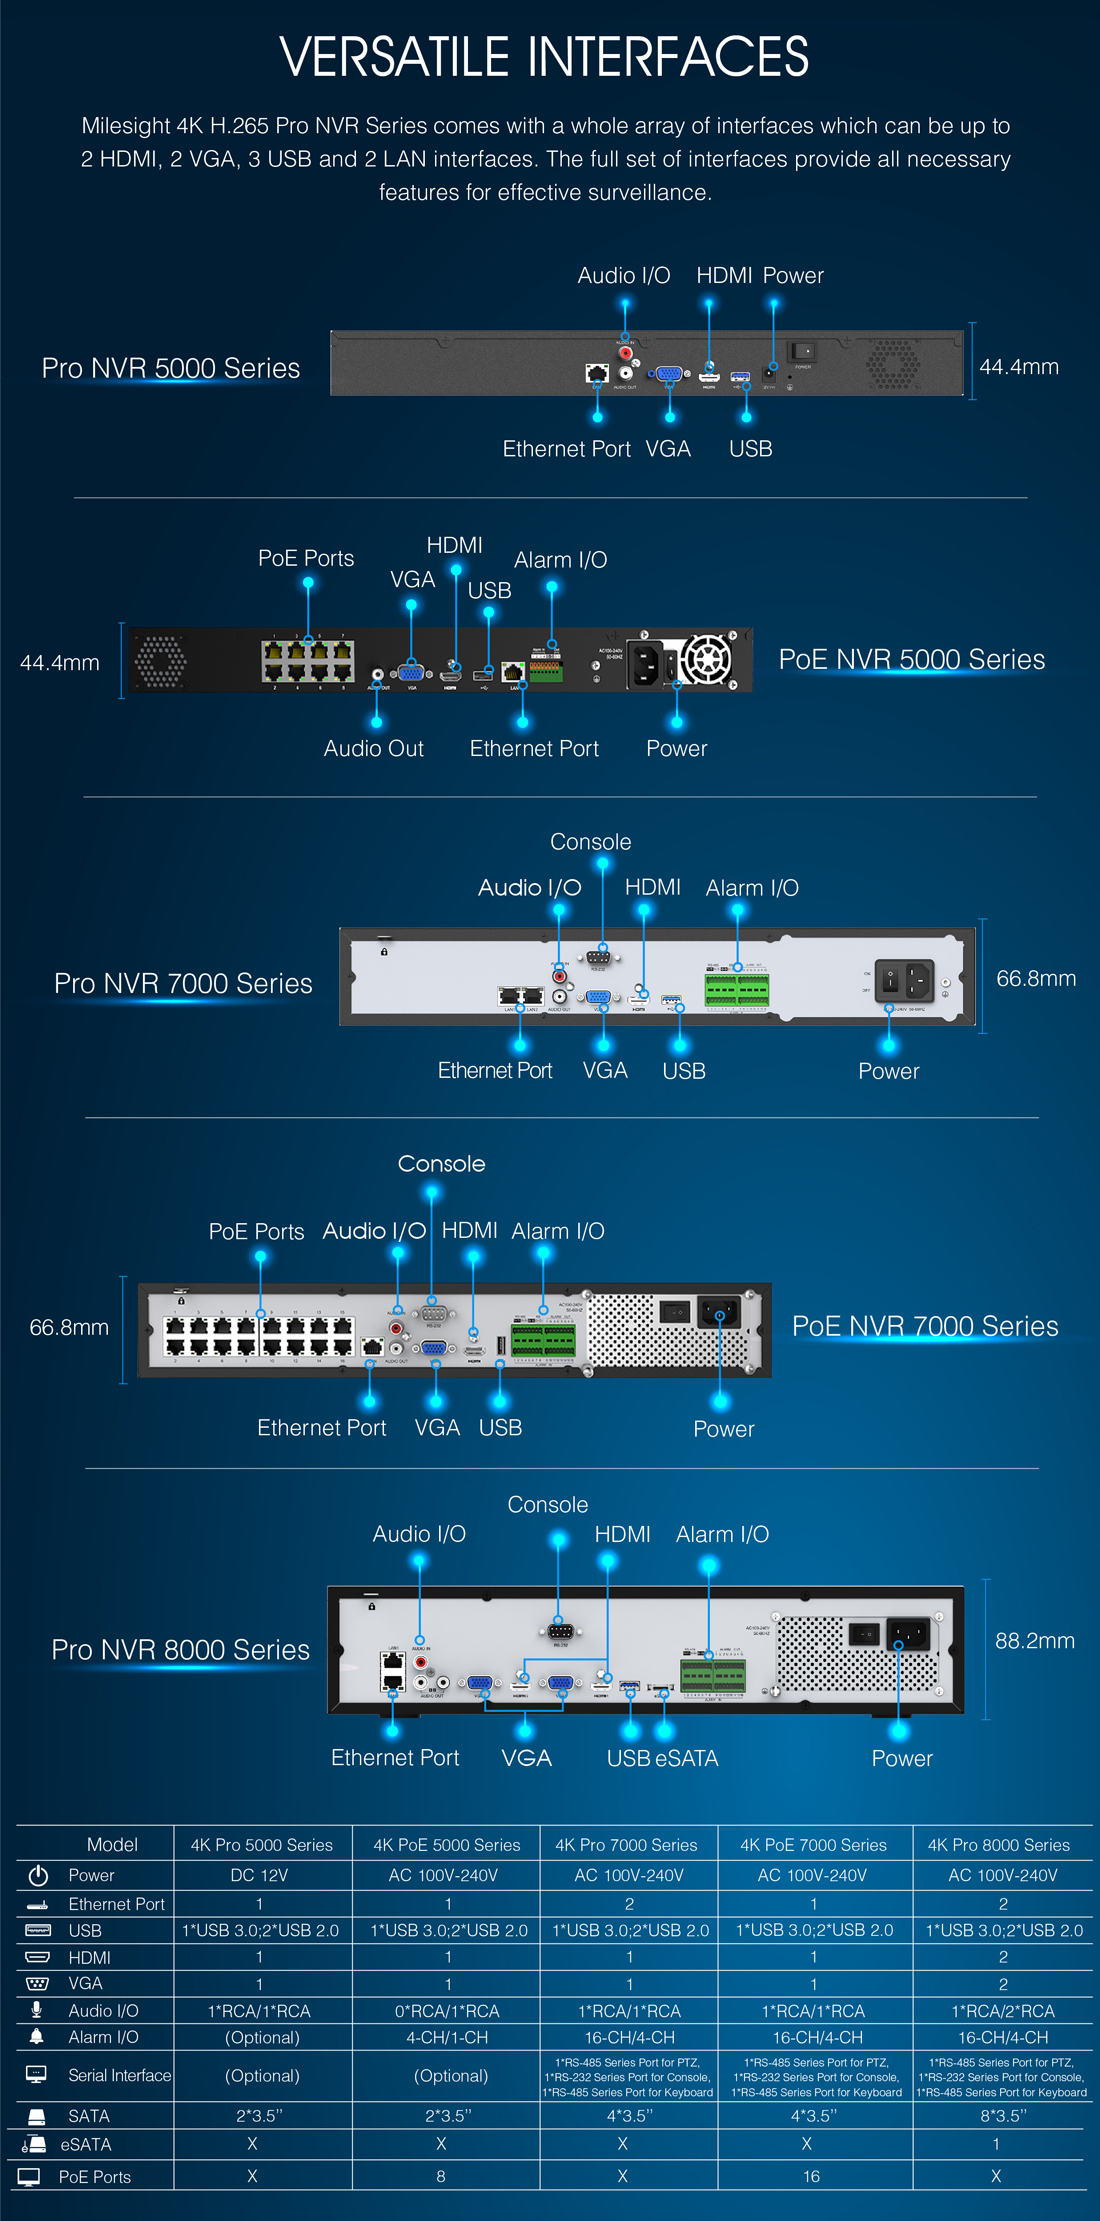 The versatile interfaces of Milesight 4K Pro NVR Series including Alarm I/O, Ethernet Pot HDMI, etc.